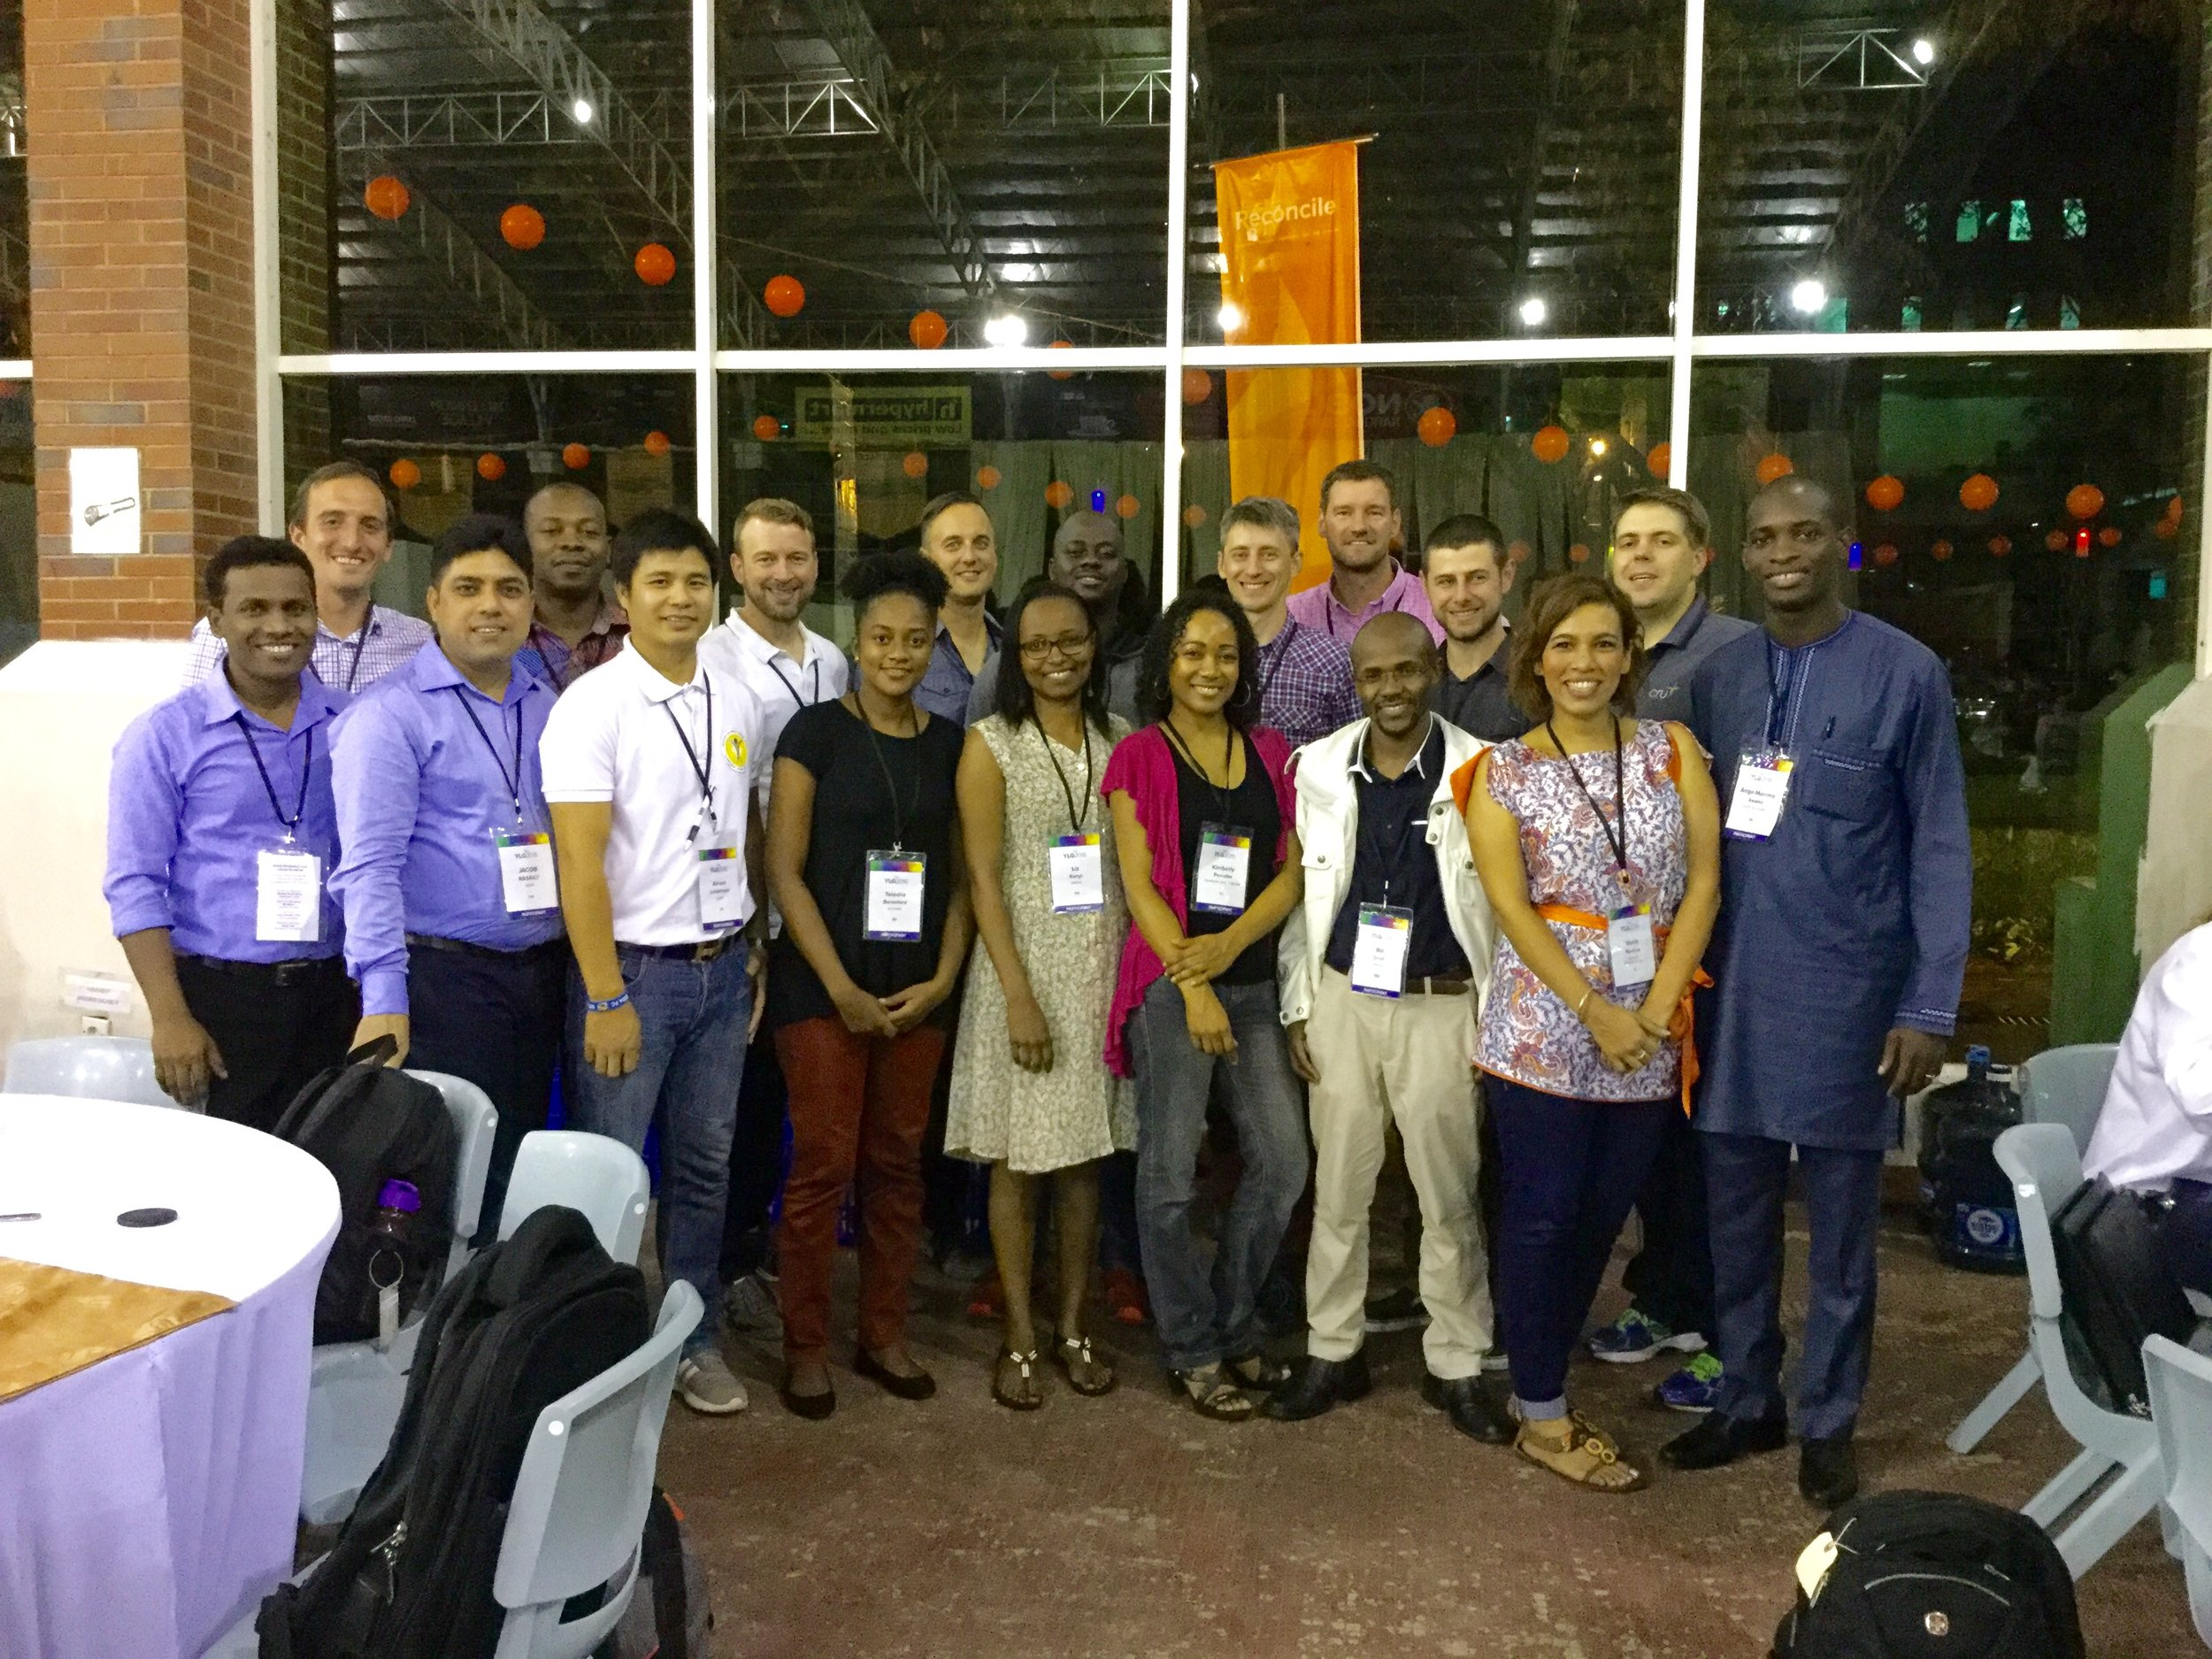 Cru staff from Nepal, India, Costa Rice, Trinidad and Tobago, Hungary, Romania, Australia, Canada, Kenya, Ghana,Nigeria and the United States (me) participated in the Lausanne Movement's Younger Leaders Gathering.